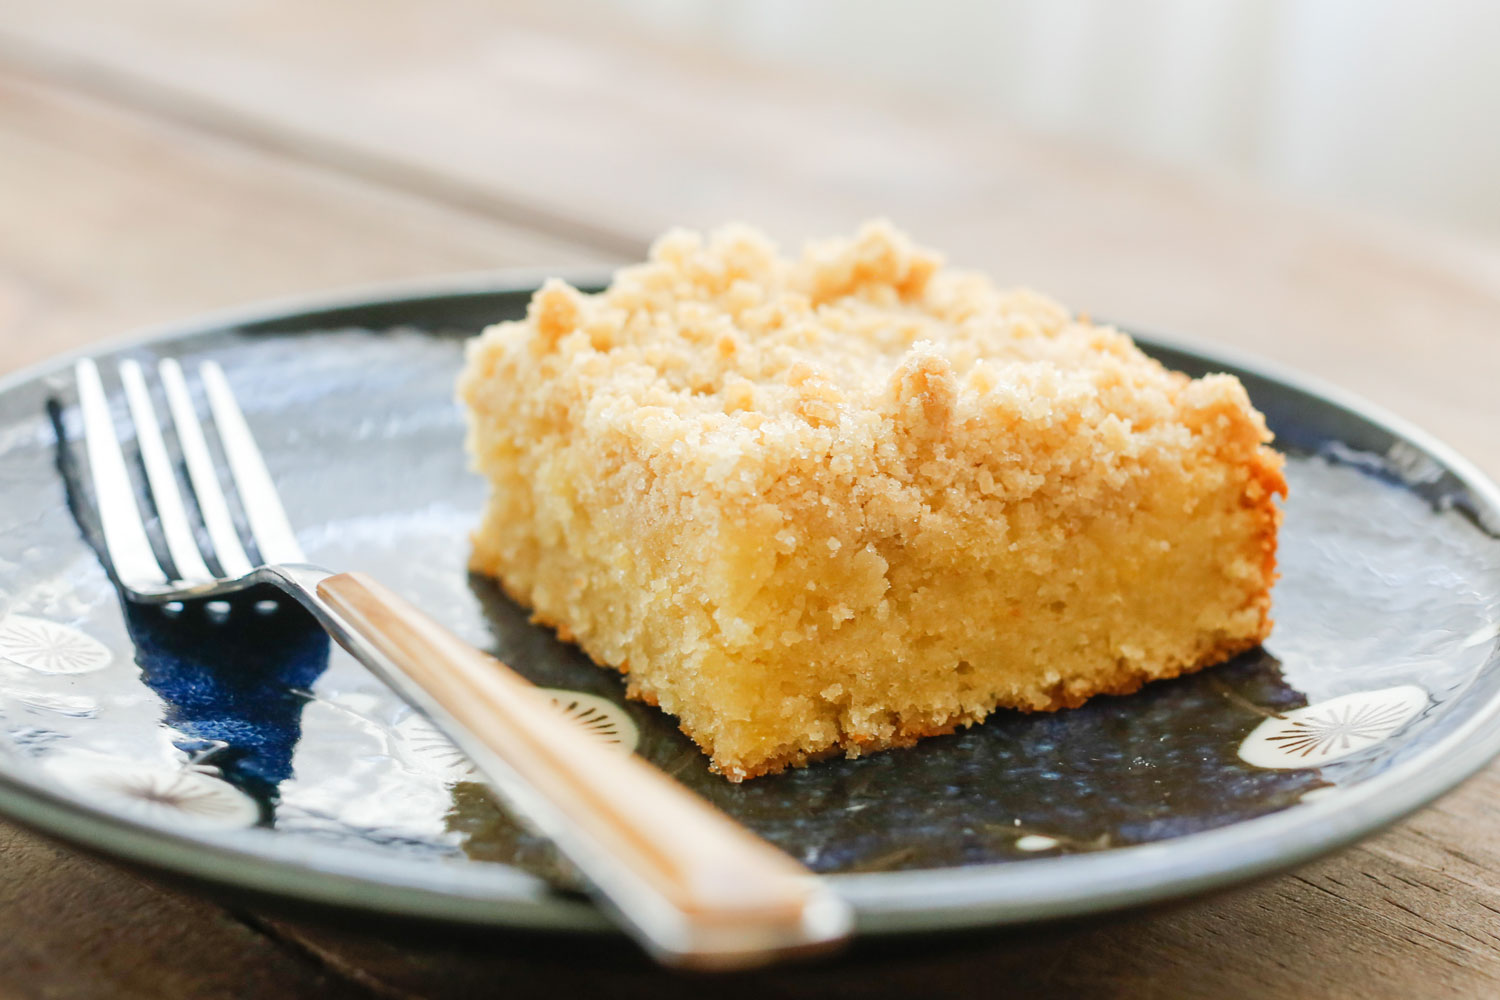 Lemon Coffee Cake - get the recipe at barefeetinthekitchen.com